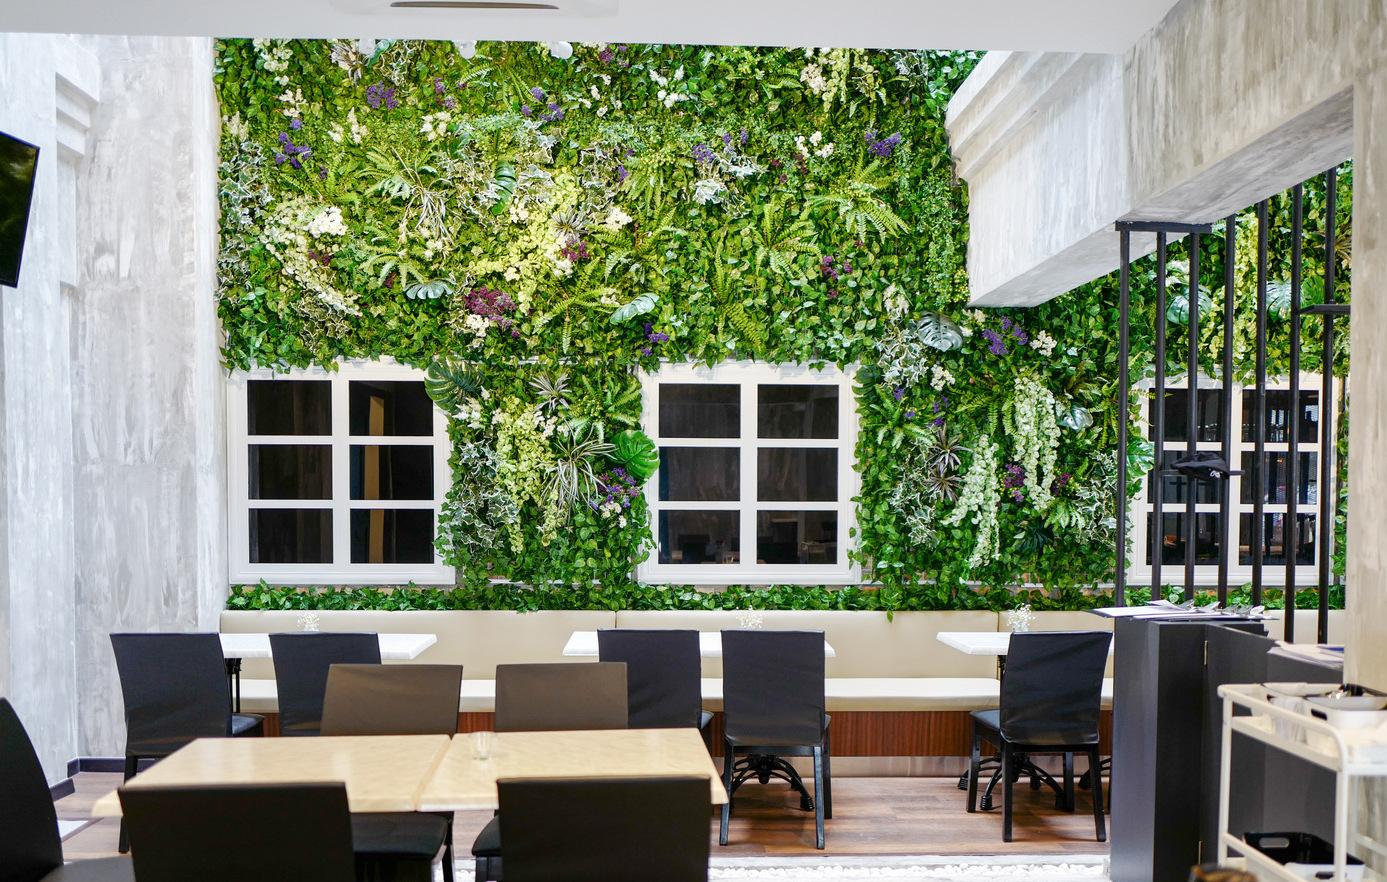 KL Hotels - mil design cafe green wall